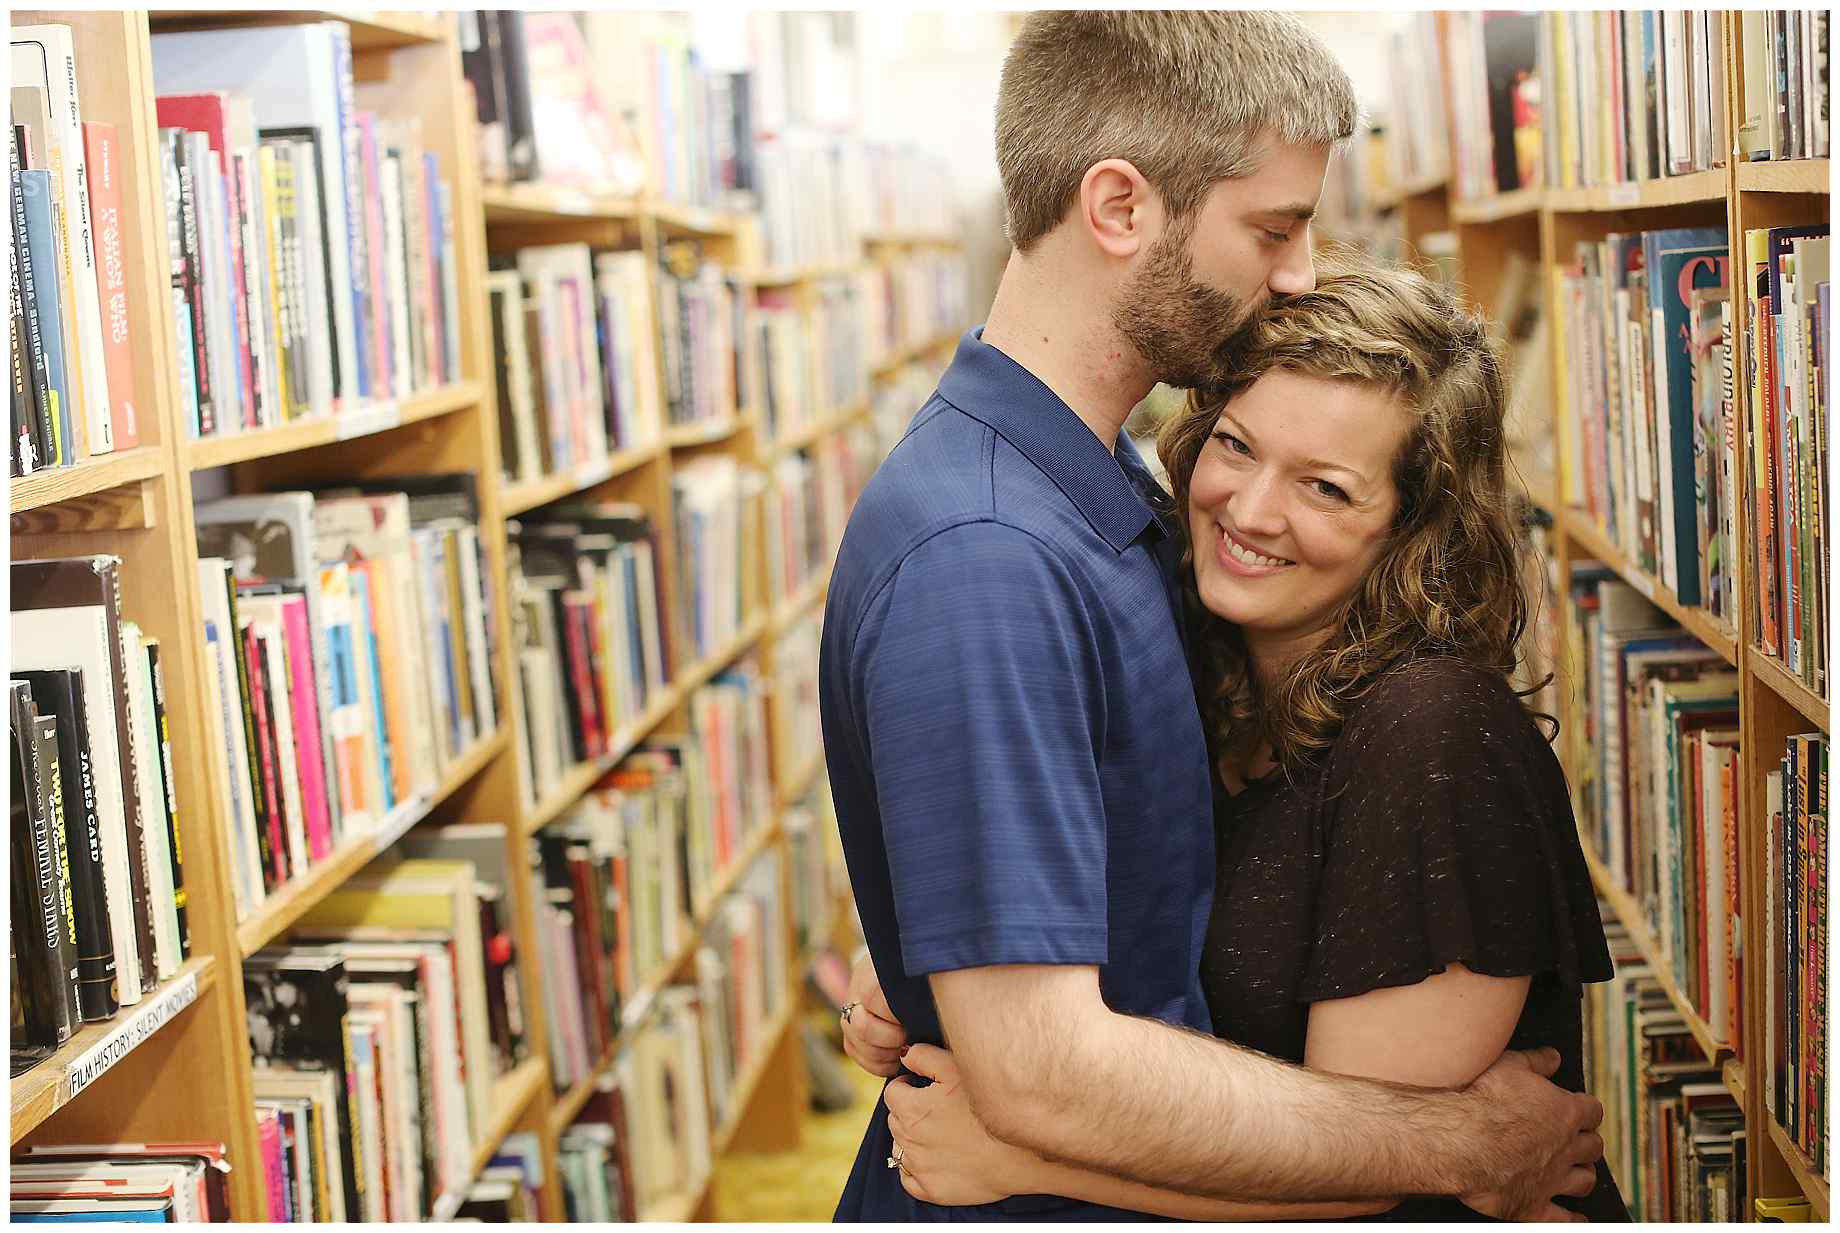 denton-bookstore-engagement-photography-007